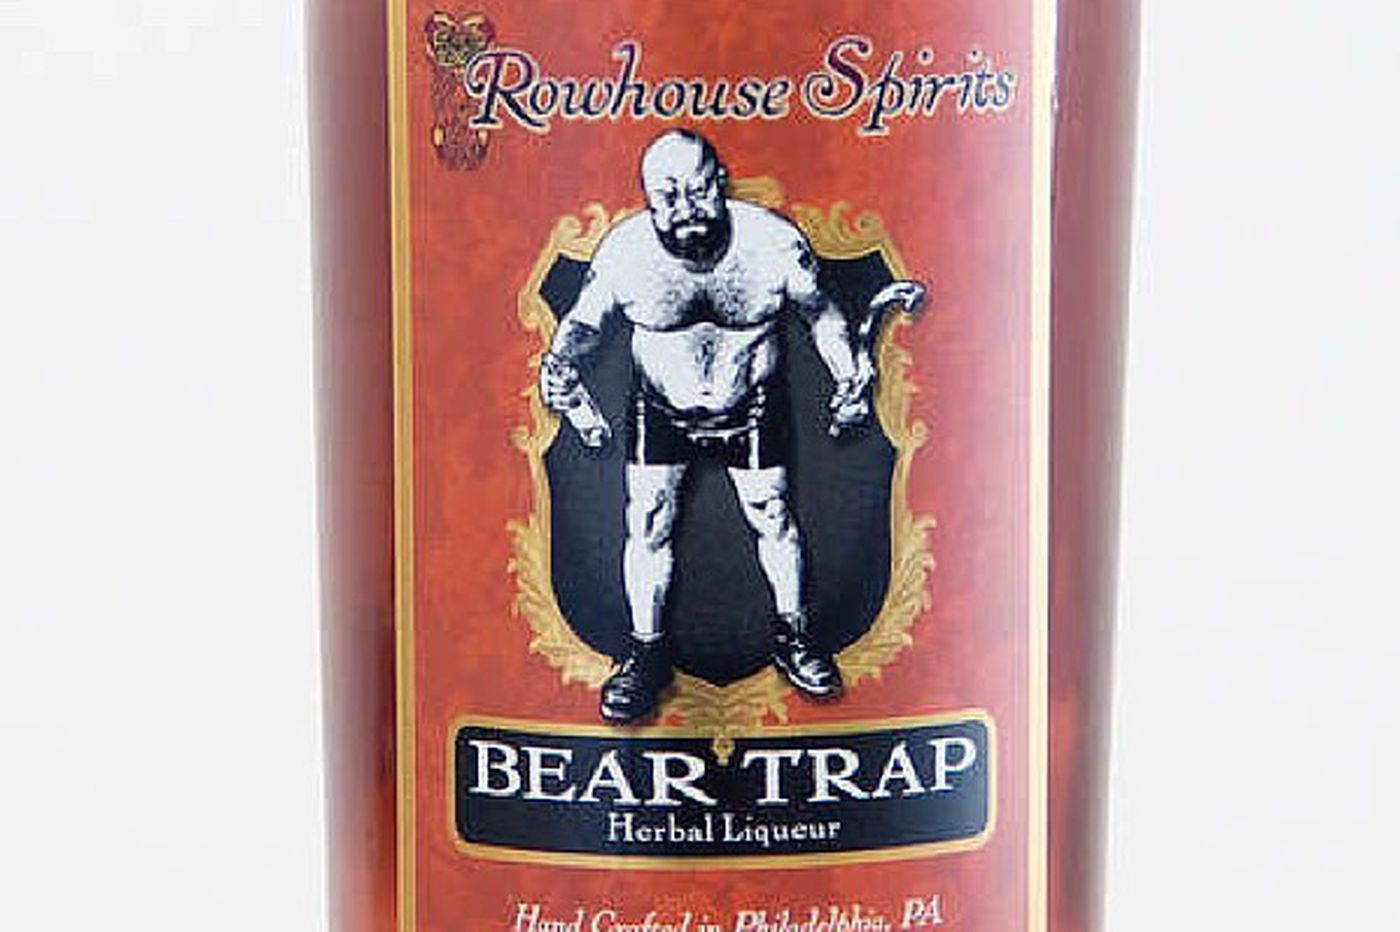 Drink: Bear Trap from Rowhouse Spirits